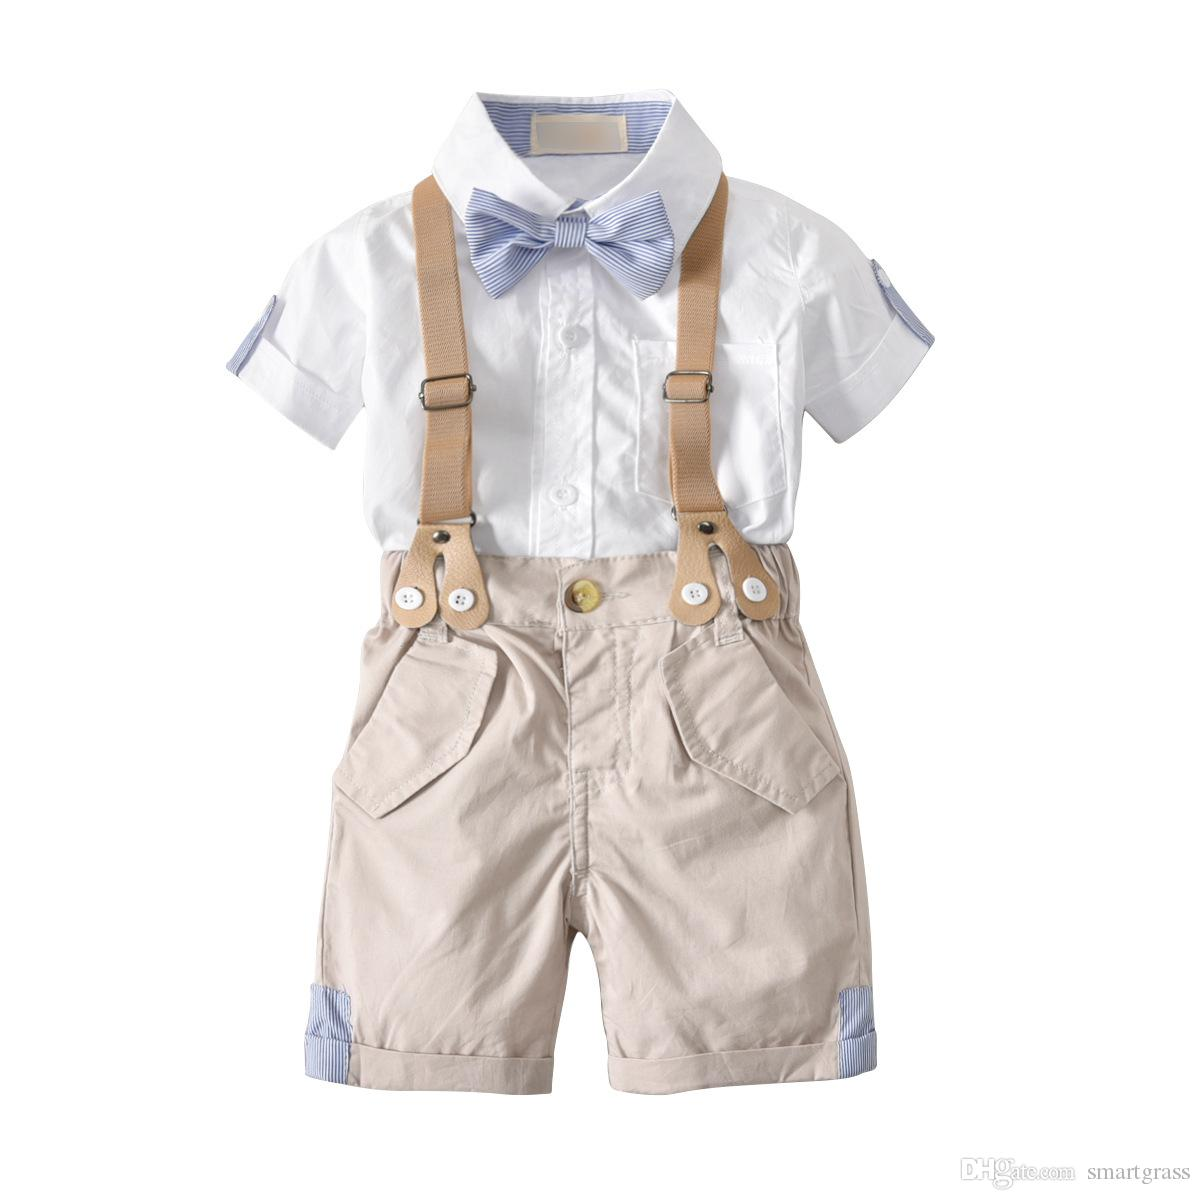 79d1dce5f 2019 Little Gentleman Baby Boy Clothes Fashion Summer Baby Clothes ...